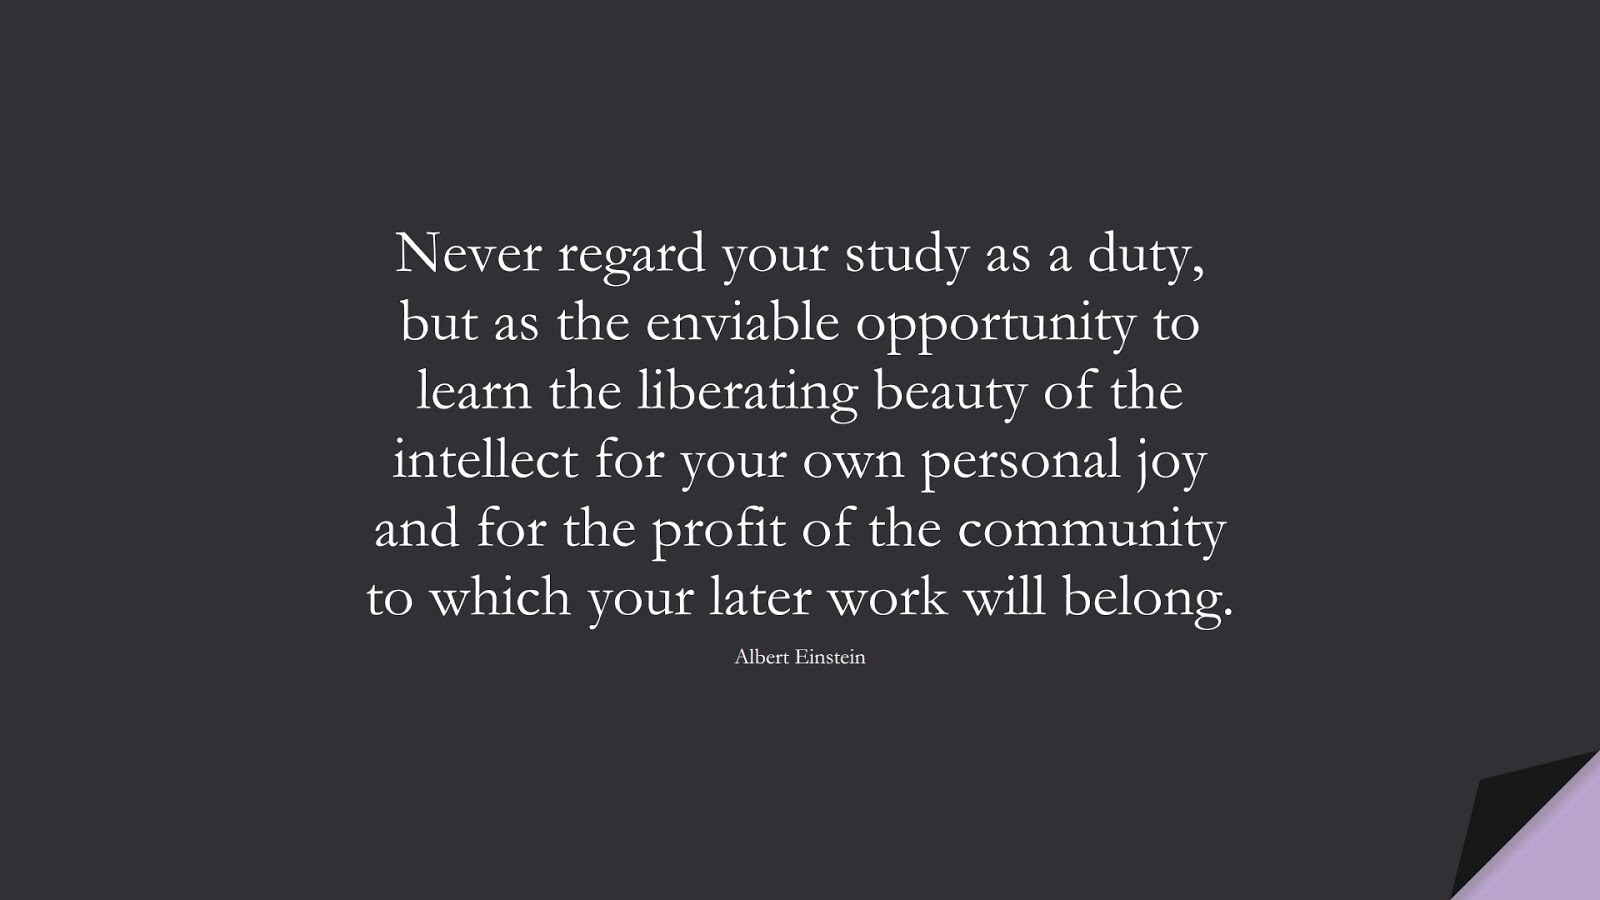 Never regard your study as a duty, but as the enviable opportunity to learn the liberating beauty of the intellect for your own personal joy and for the profit of the community to which your later work will belong. (Albert Einstein);  #AlbertEnsteinQuotes